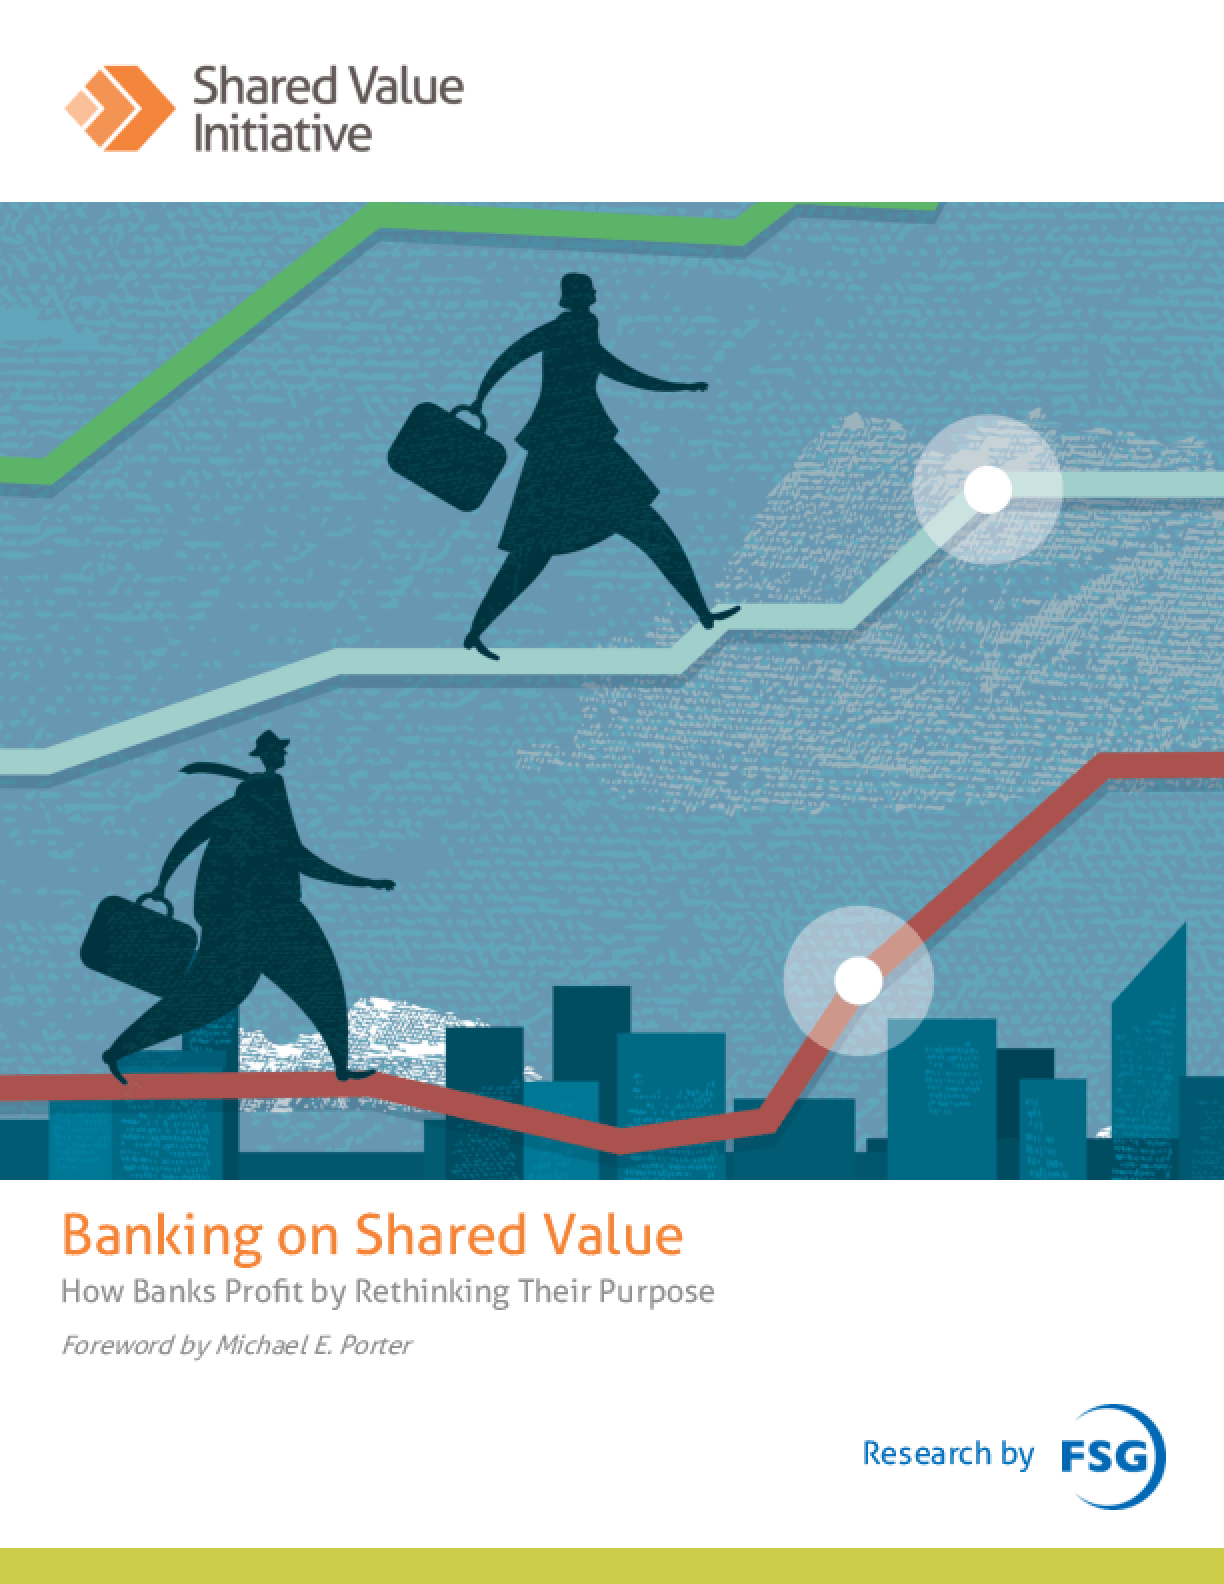 Banking on Shared Value: How Banks Profit by Rethinking Their Purpose